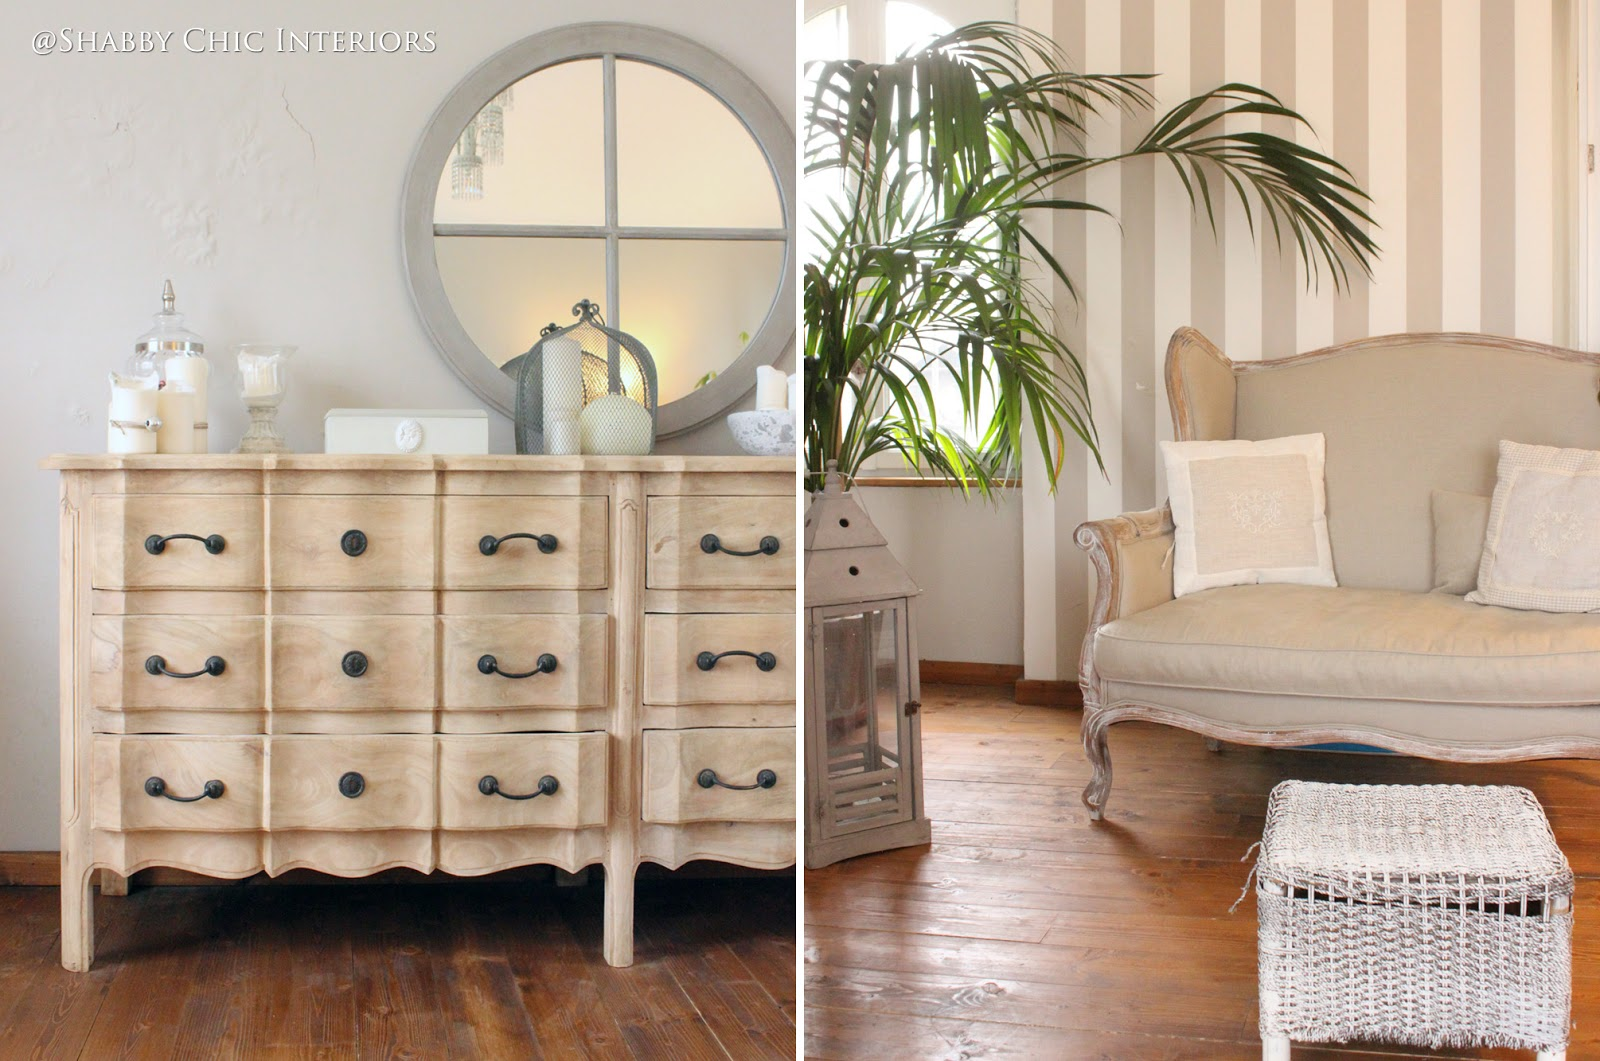 Nuovo corso shabby chic a torino shabby chic interiors for Country style arredamento